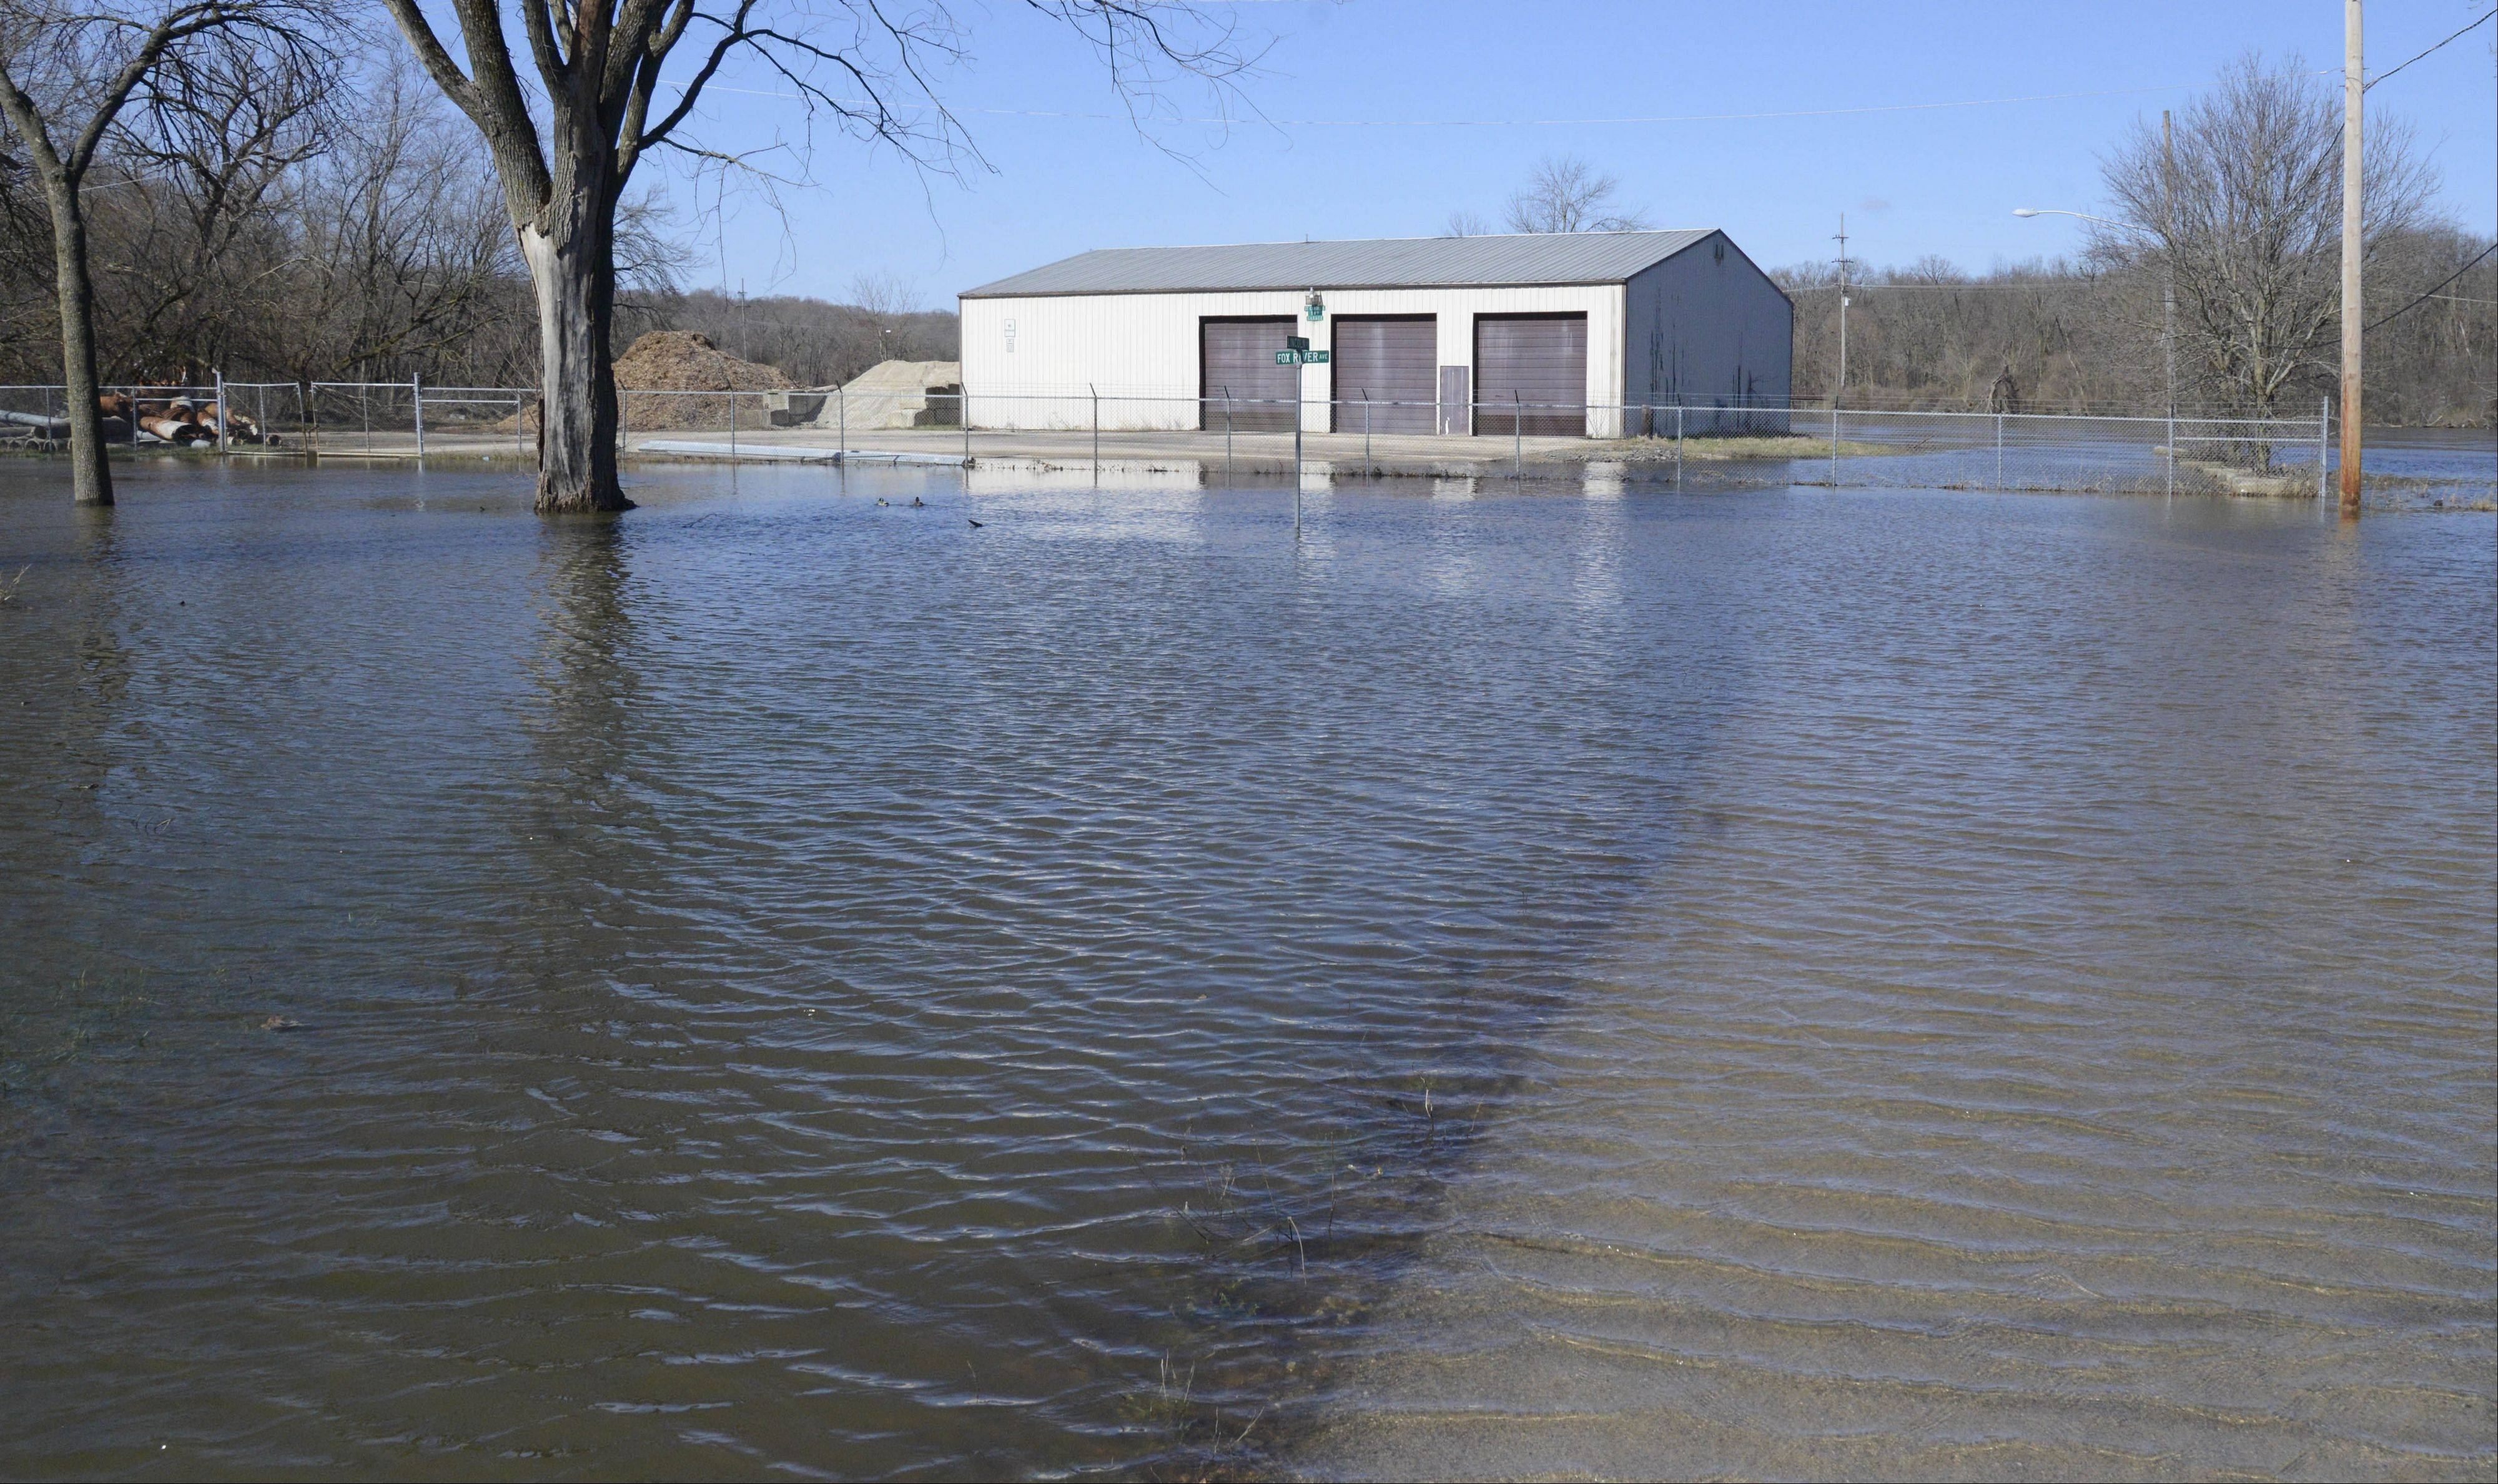 A St. Charles Township garage sits on an island of sorts on Fox River Ave. near Lincoln St. in the Valley View neighborhood of St. Charles on Saturday, April 20. This part of the neighborhood, near Taly Park, has flooded numerous times in the past.